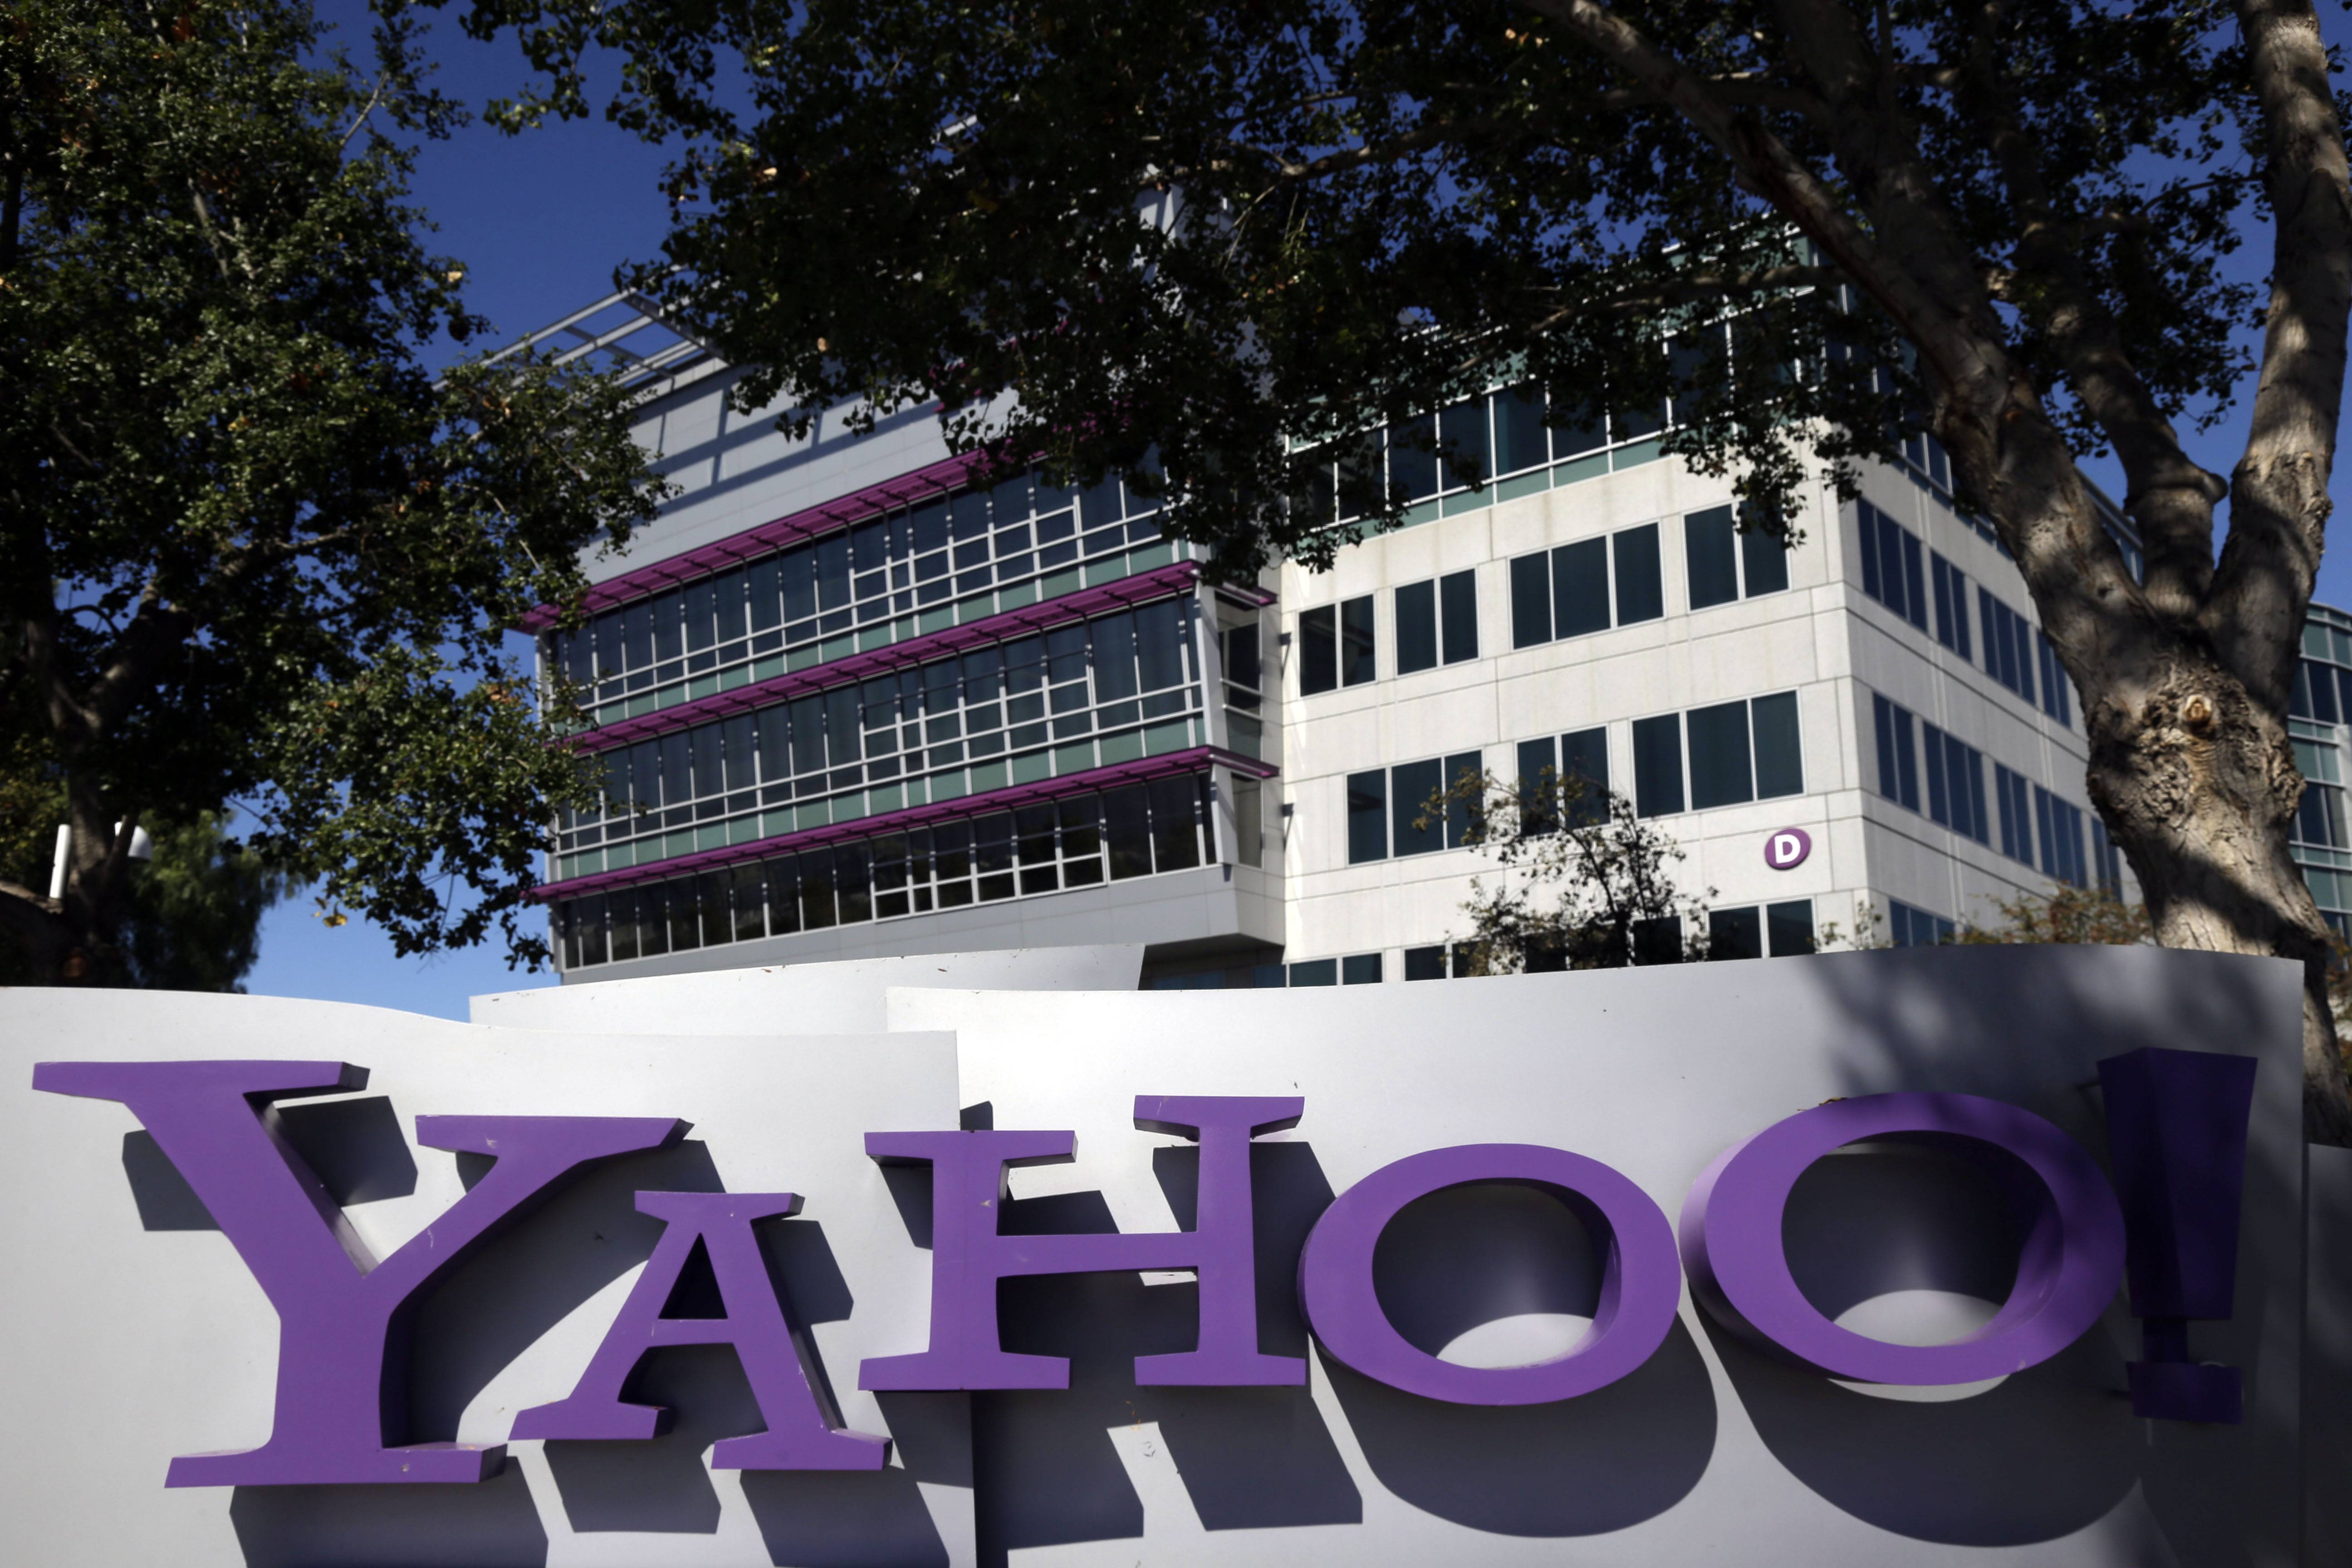 Yahoo! Inc. may rise 65 percent by the end of the year after Chinese e-commerce giant Alibaba Group Holding Ltd. goes public later this week, according to bets by structured-products buyers.